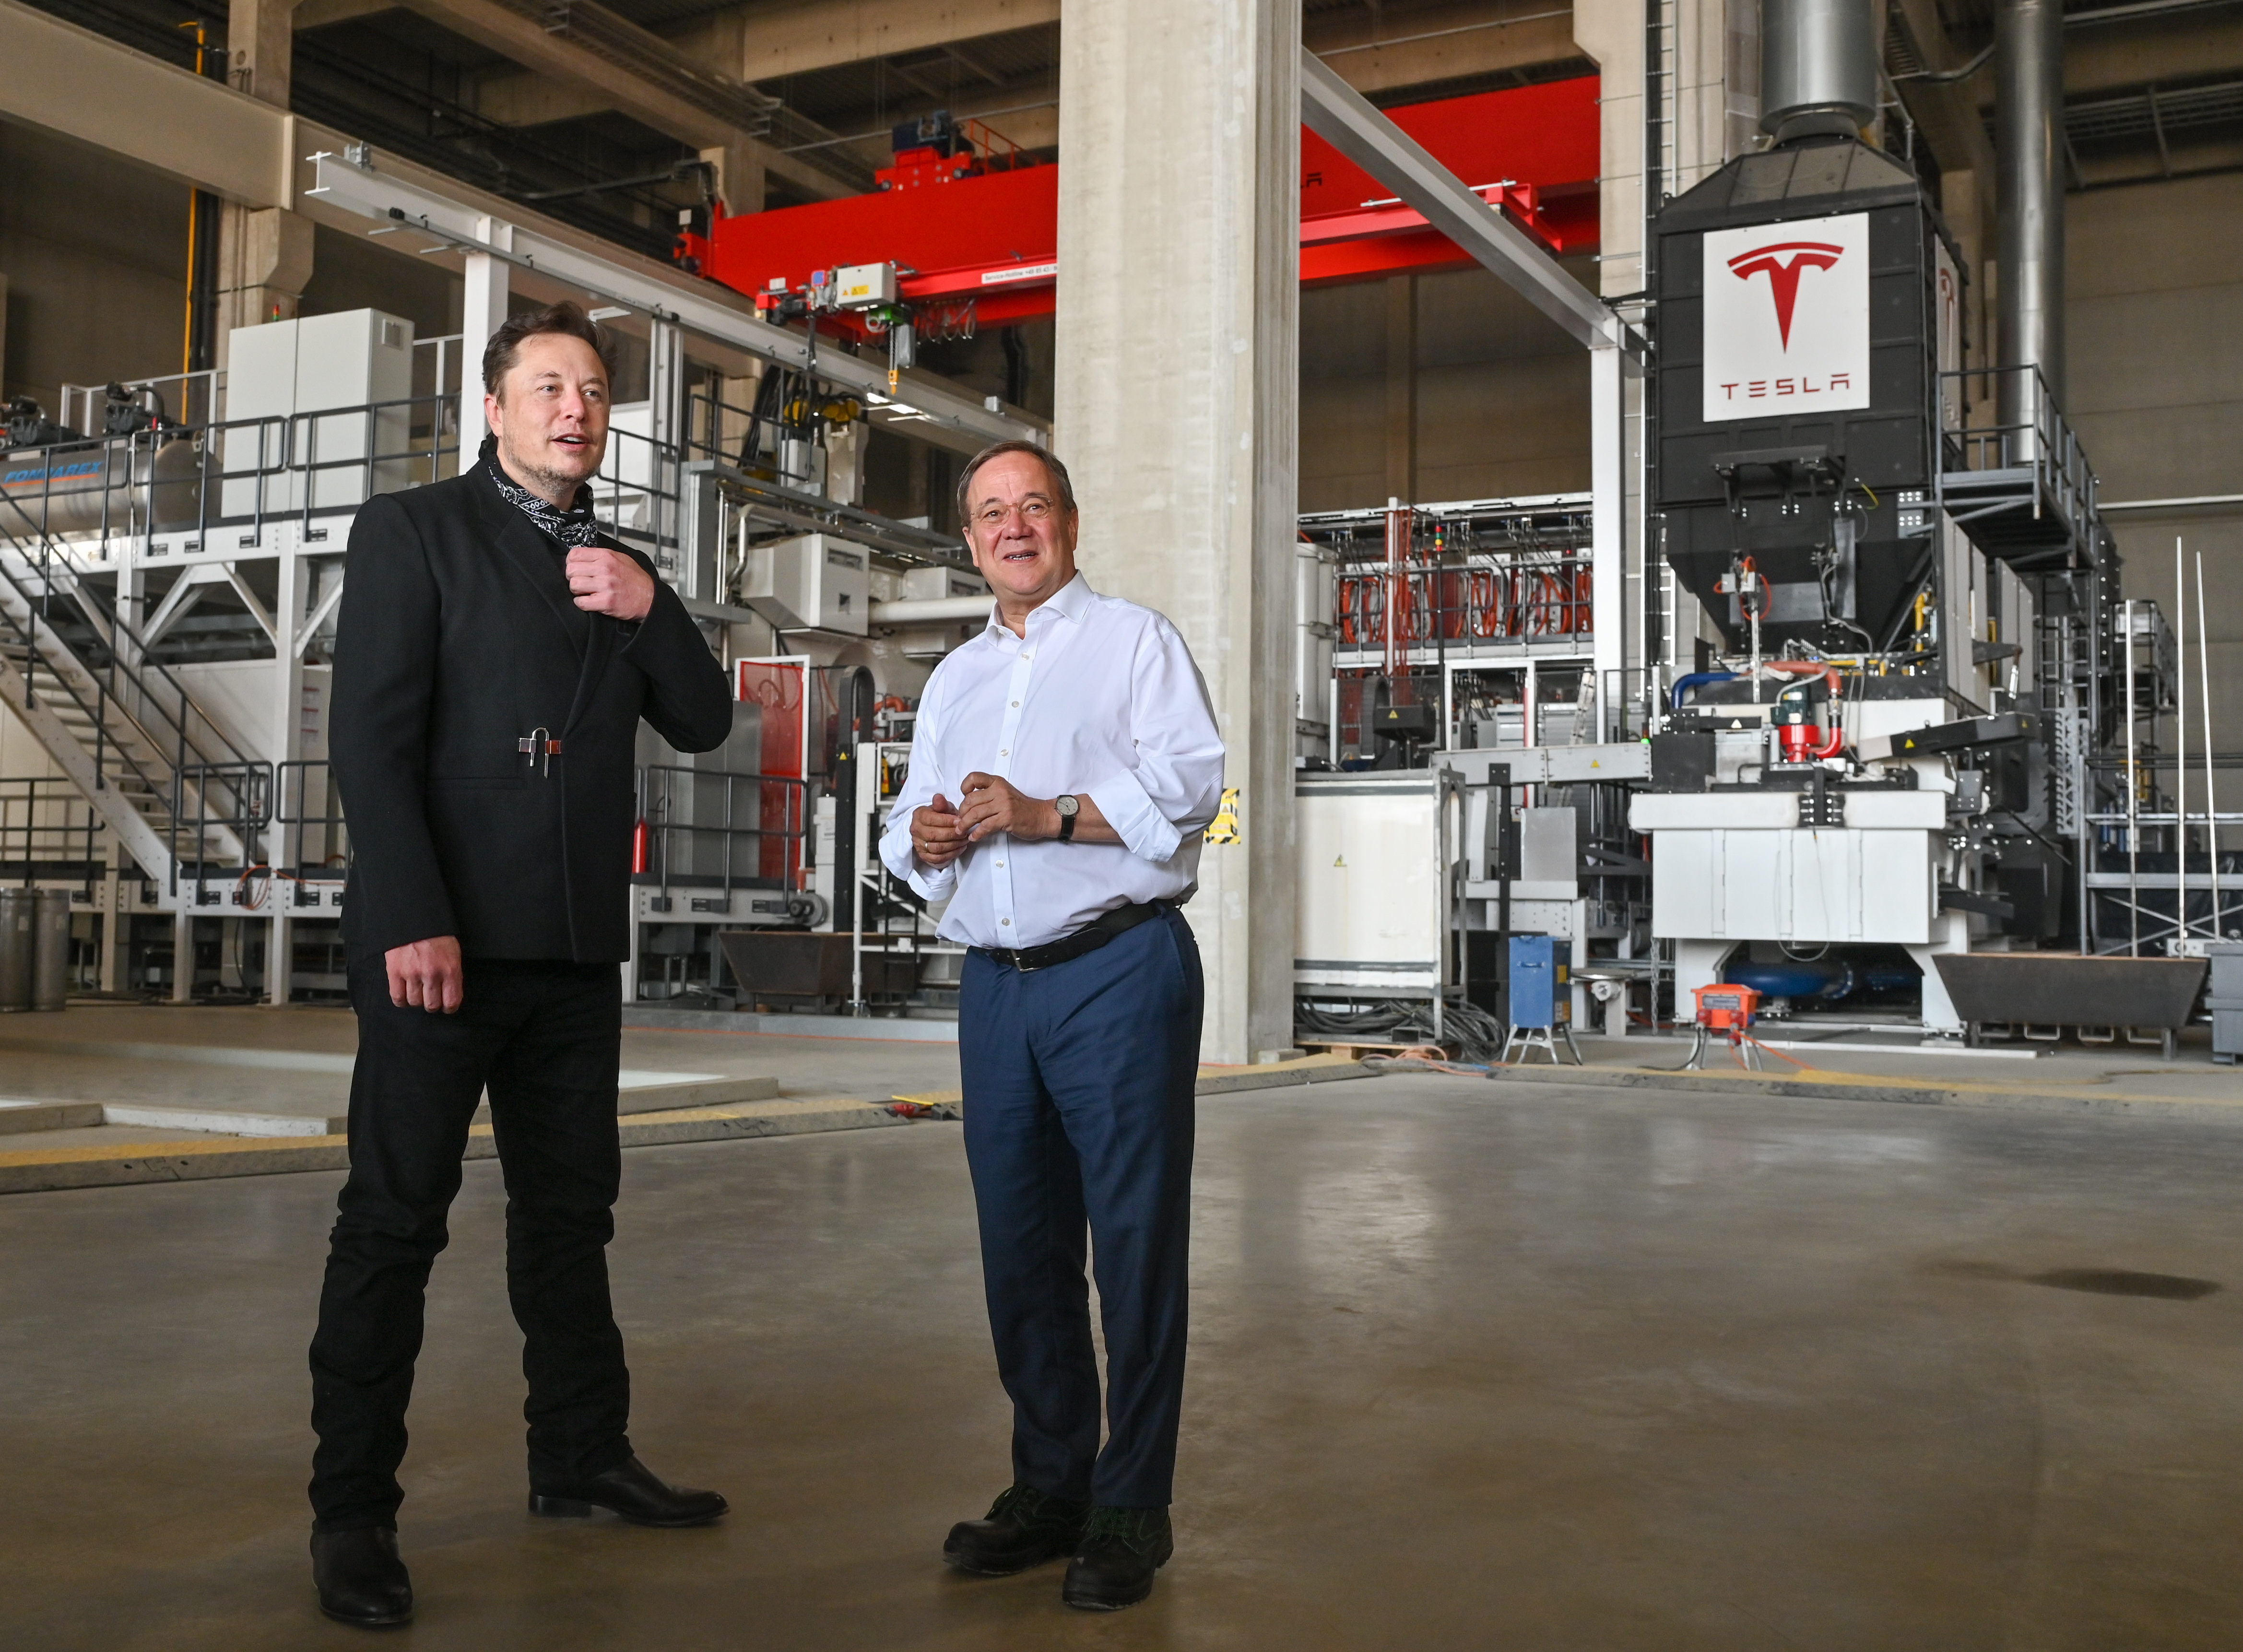 Tesla CEO Elon Musk and Armin Laschet, CDU Federal Chairman and Prime Minister of North Rhine-Westphalia, talk during a tour of the plant of the future foundry of the Tesla Gigafactory on August 13, 2021 in Grünheide near Berlin, Germany. The US company plans to build around 500,000 of the compact Model 3 and Model Y series here every year. (Photo by Patrick Pleul - Pool/Getty Images)